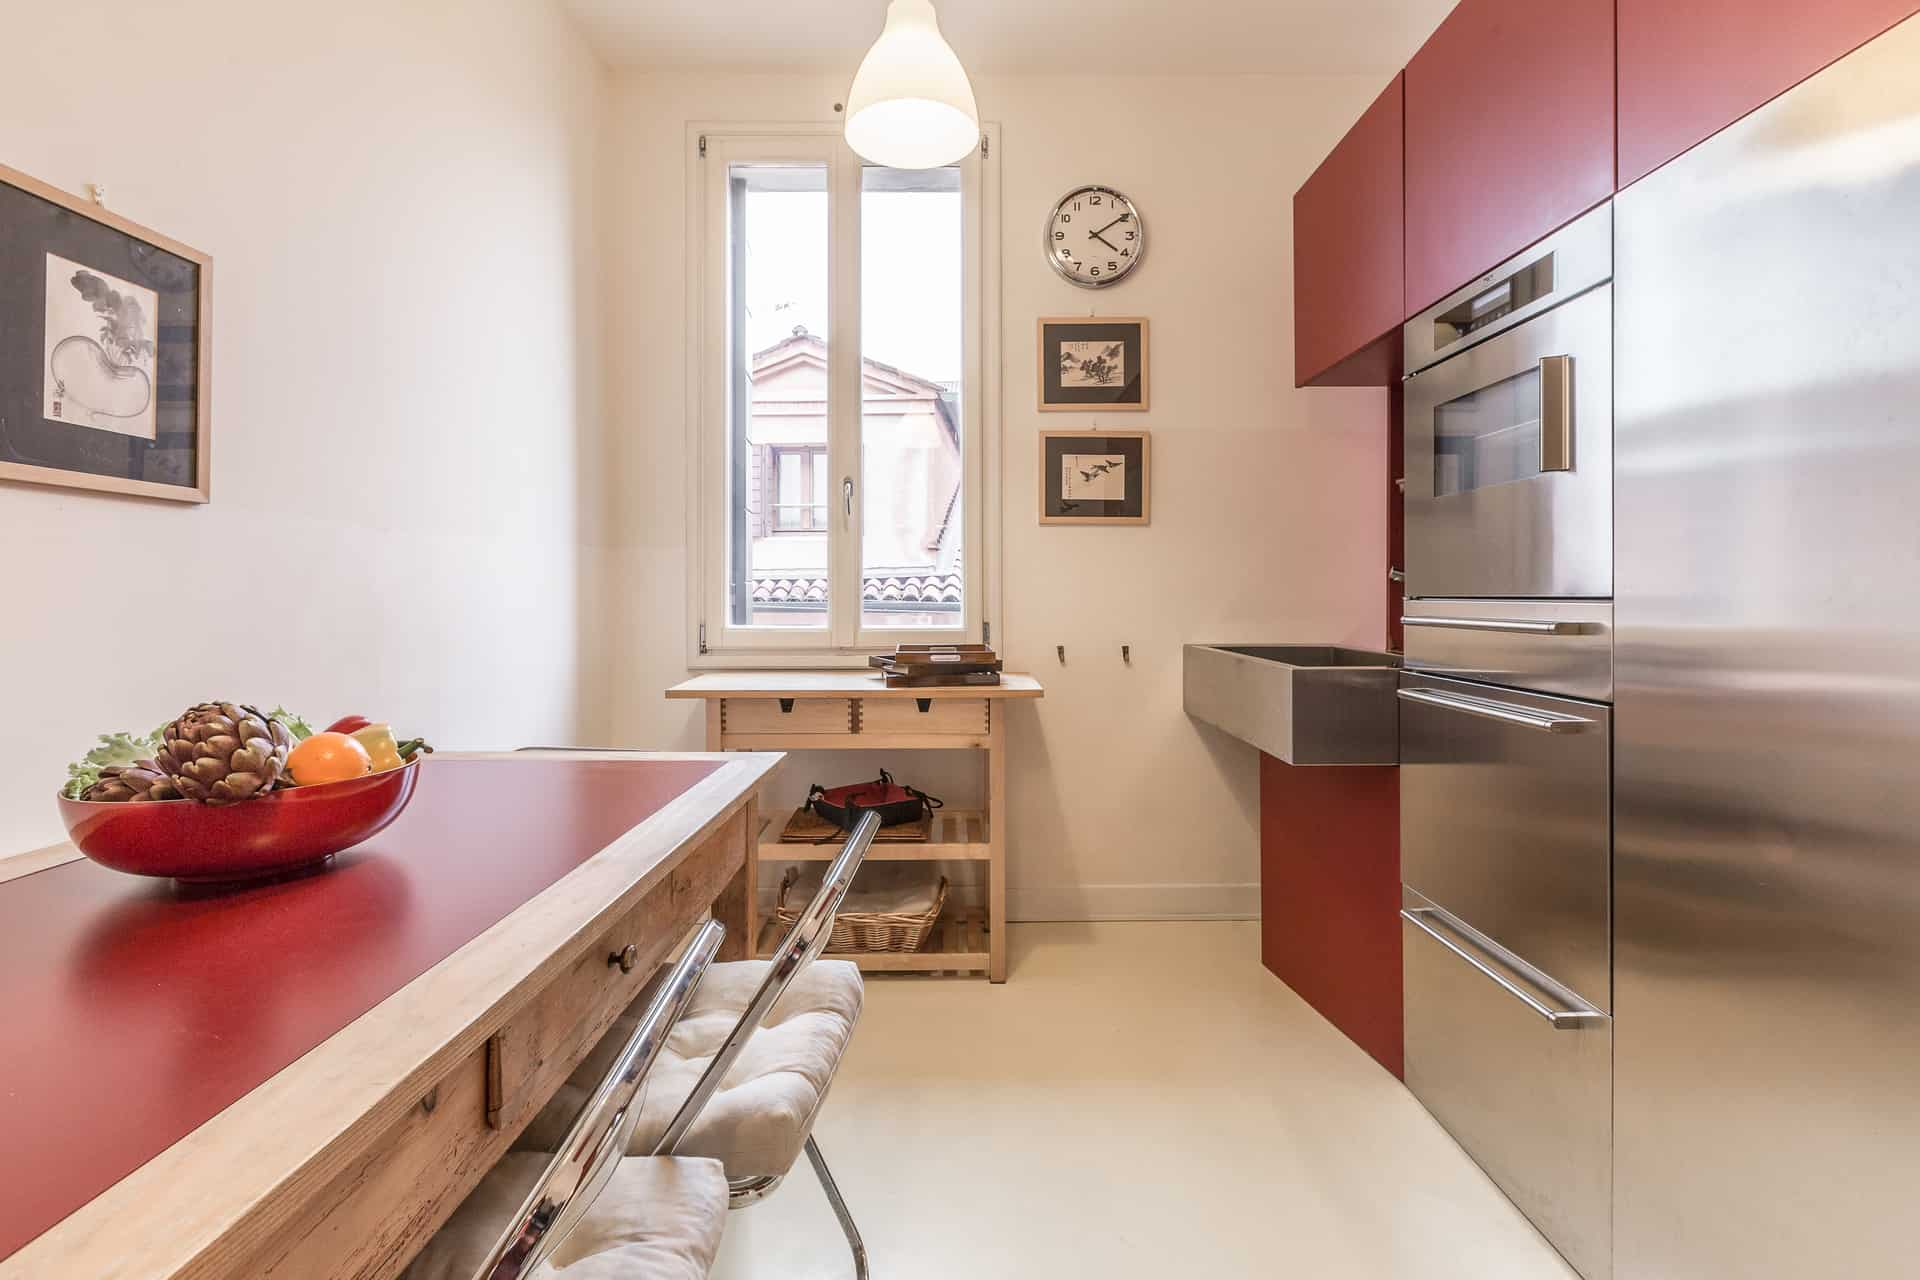 Luminous small kitchen with large dining table - Santa Marta Apartment